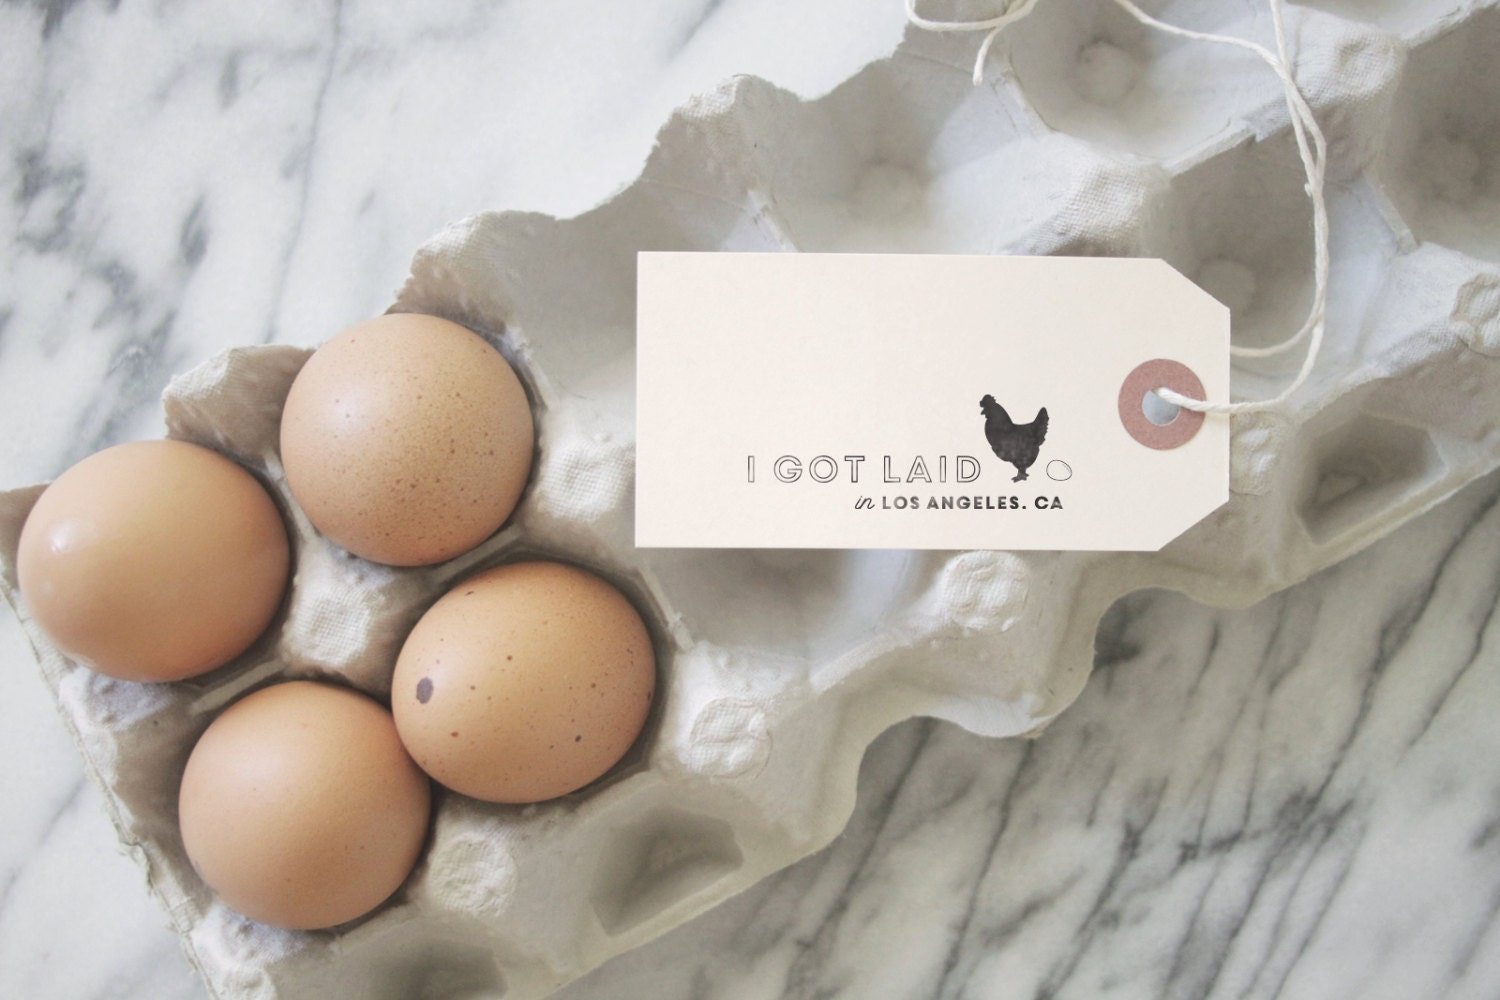 Egg Carton Stamp Chicken Stamp I got Laid by SubstationPaperie